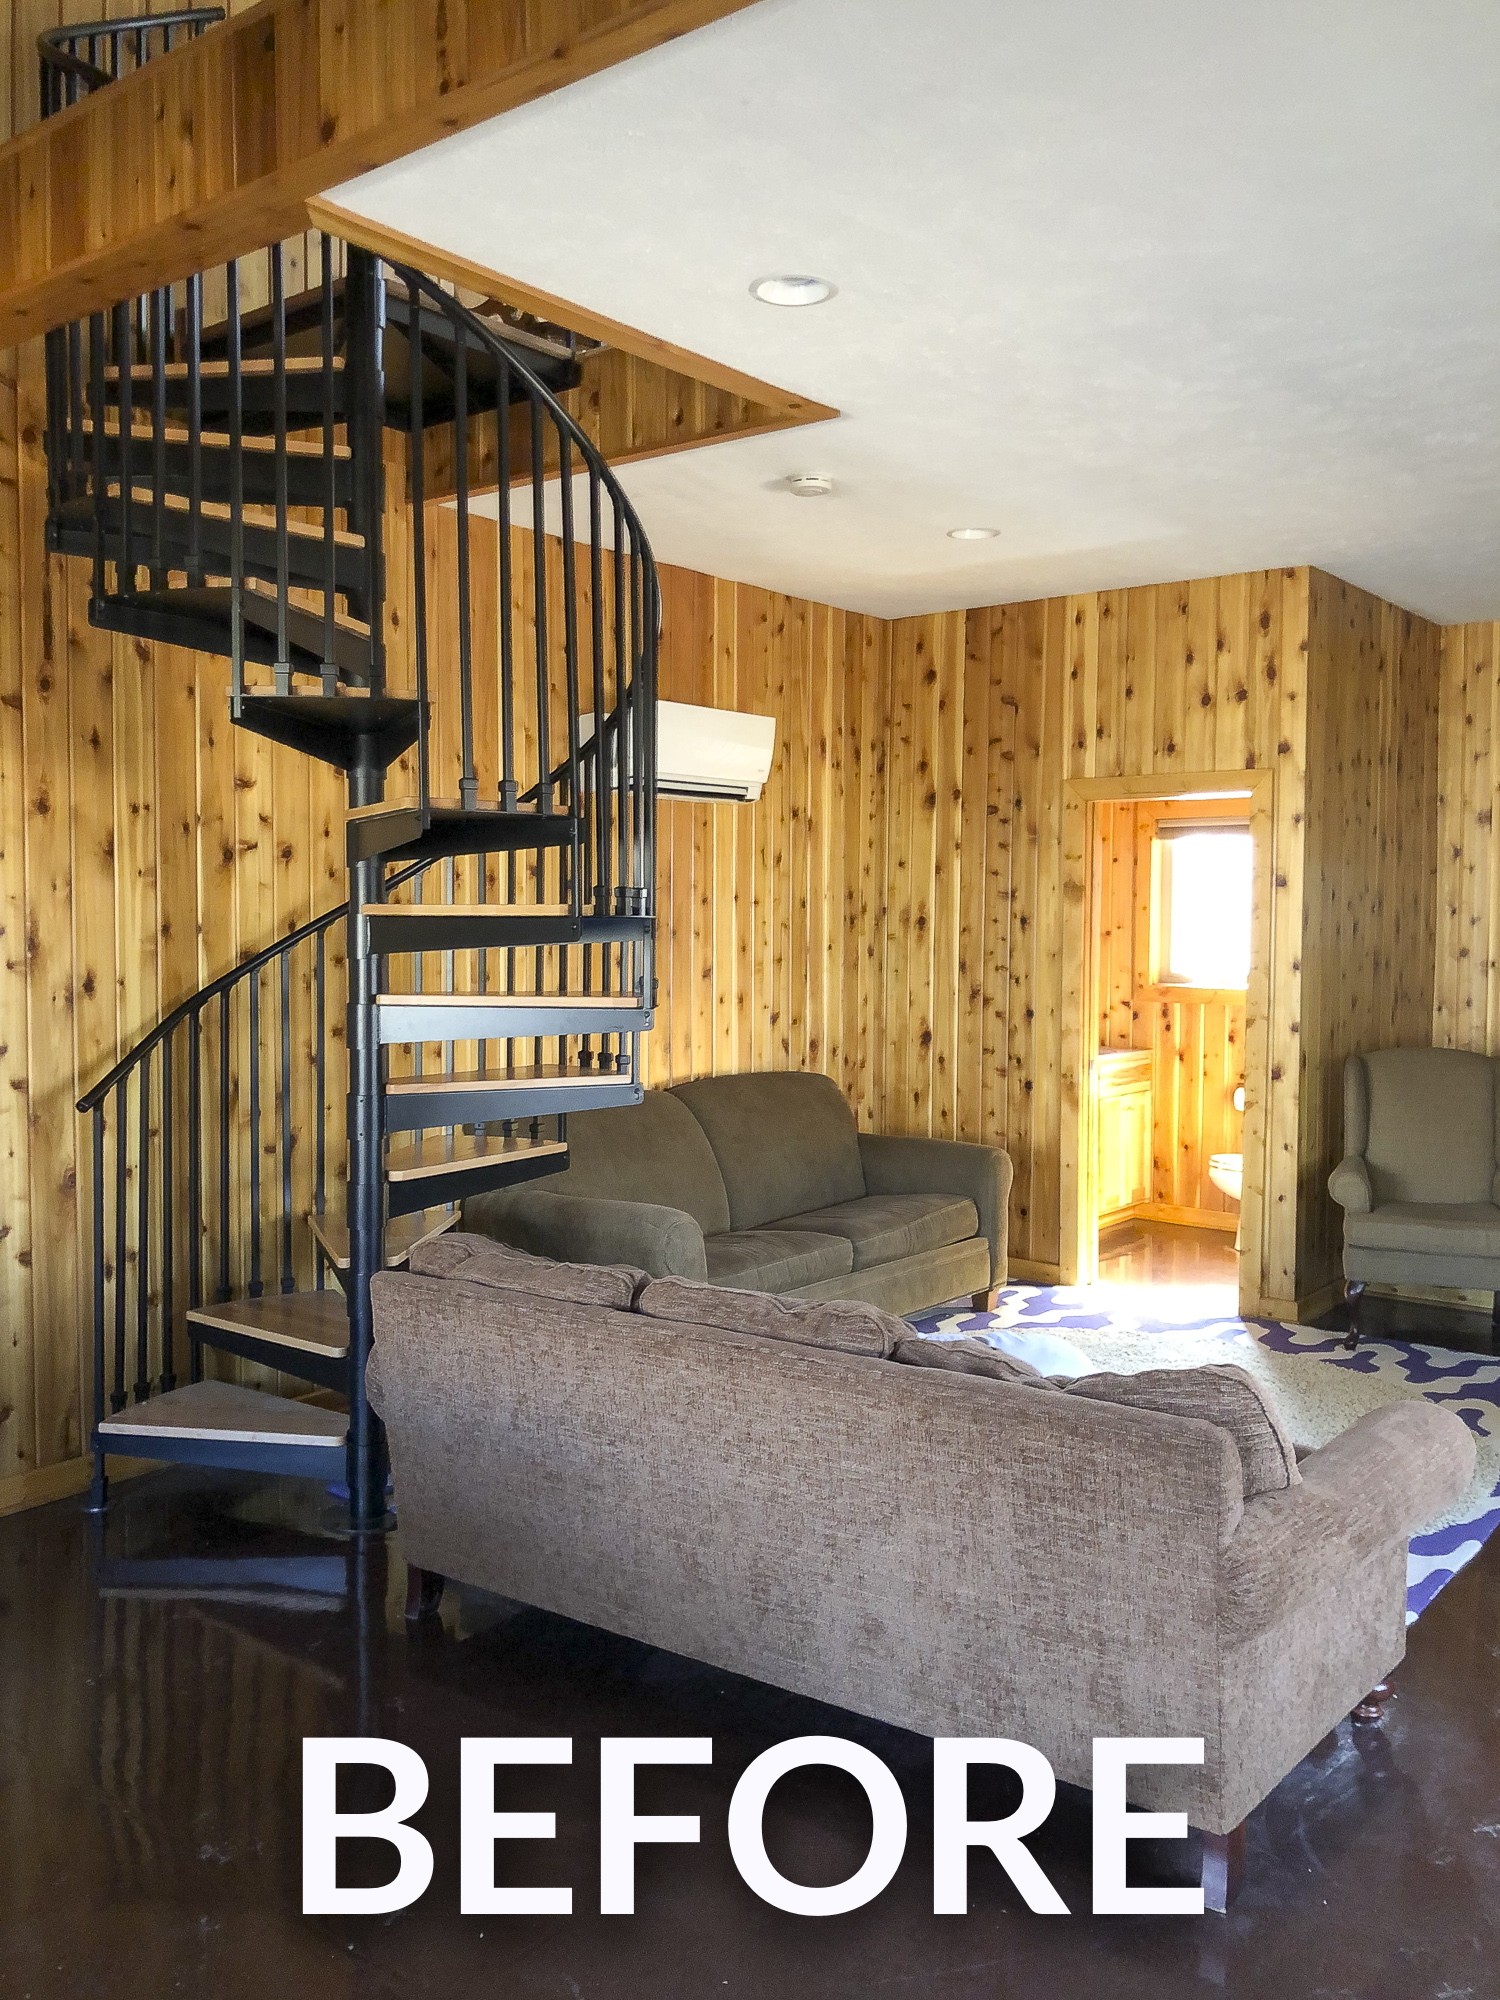 Spiral staircase in a cabin.